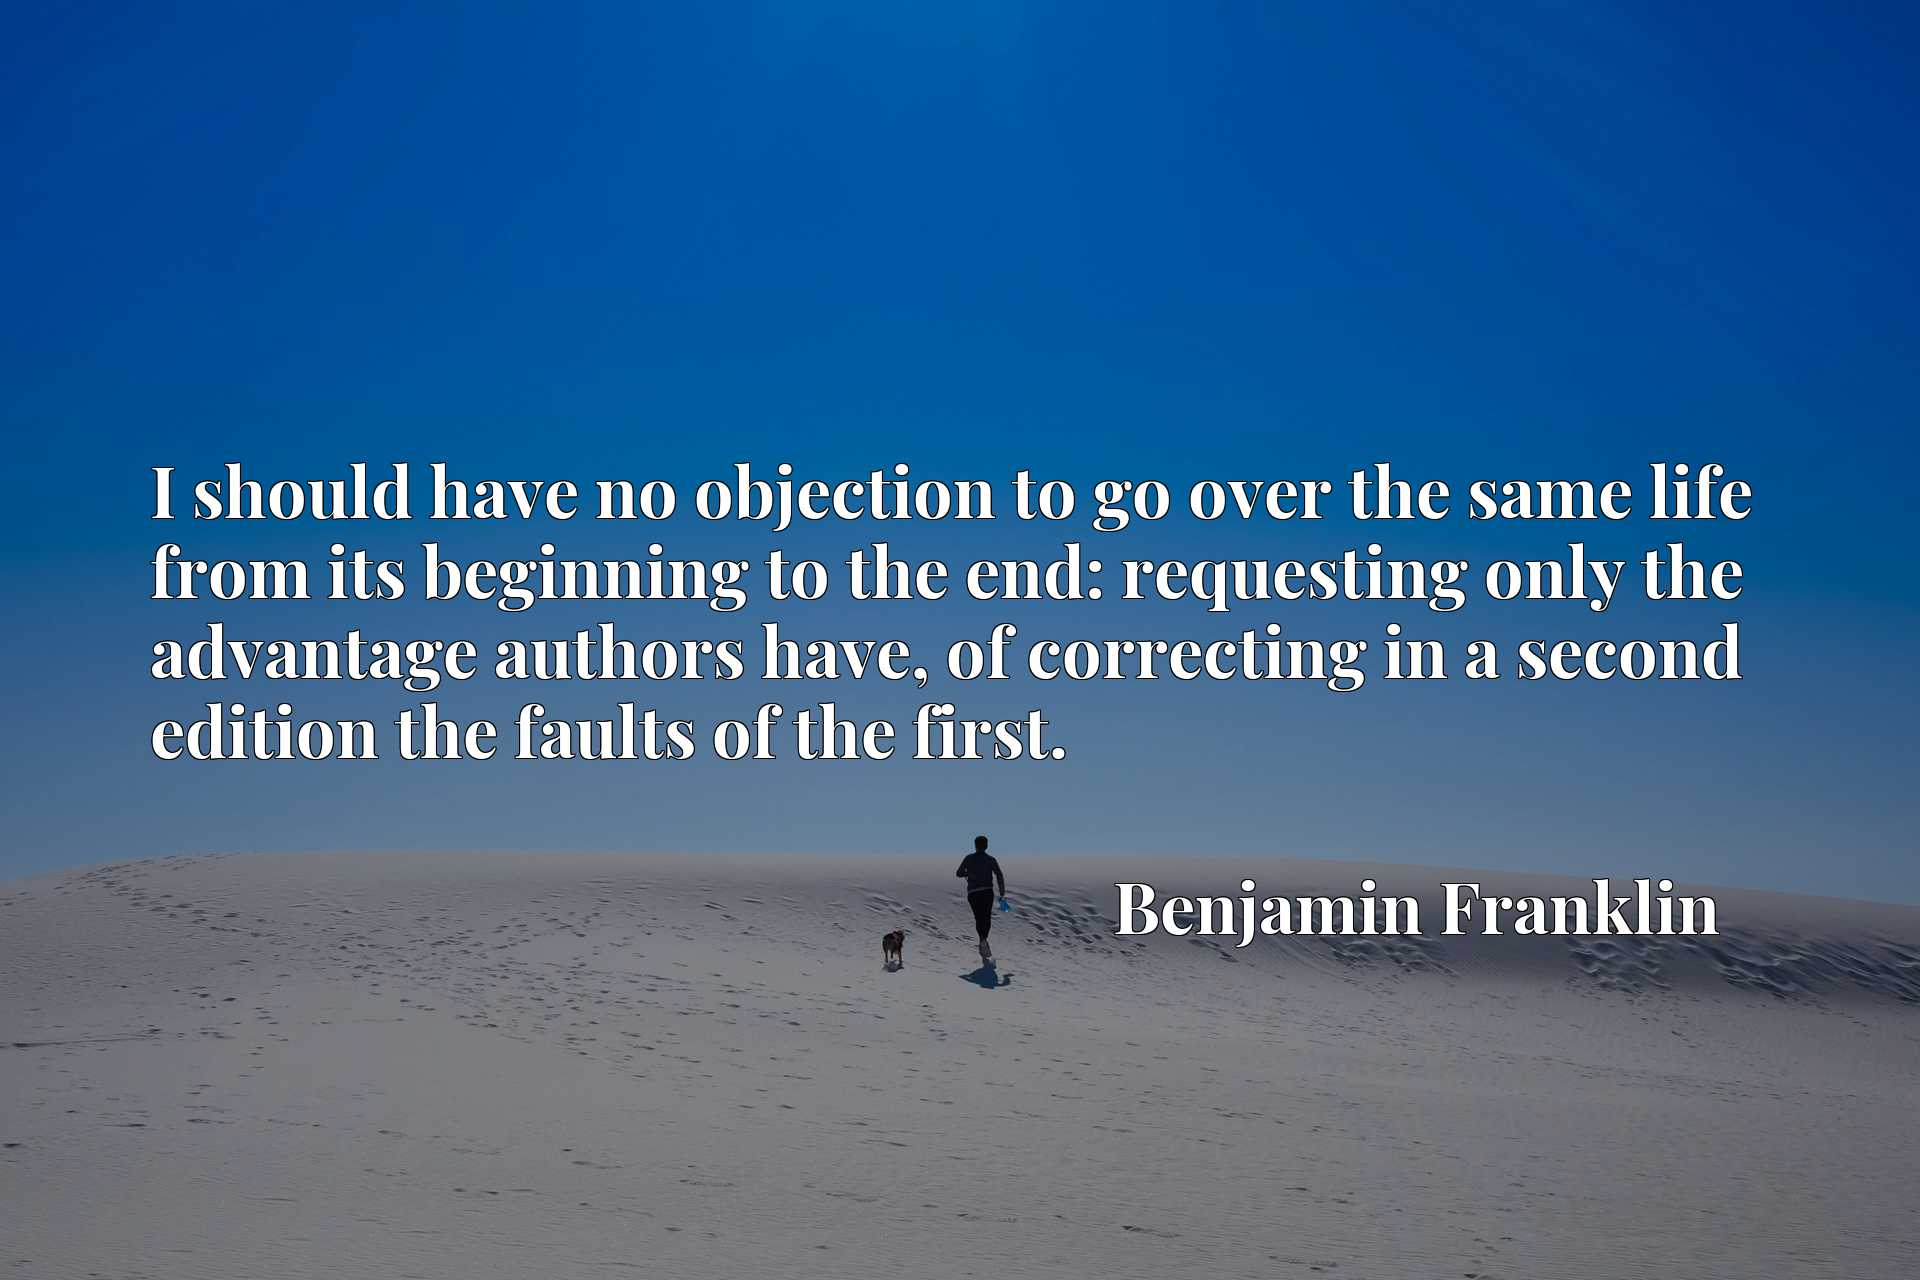 I should have no objection to go over the same life from its beginning to the end: requesting only the advantage authors have, of correcting in a second edition the faults of the first.